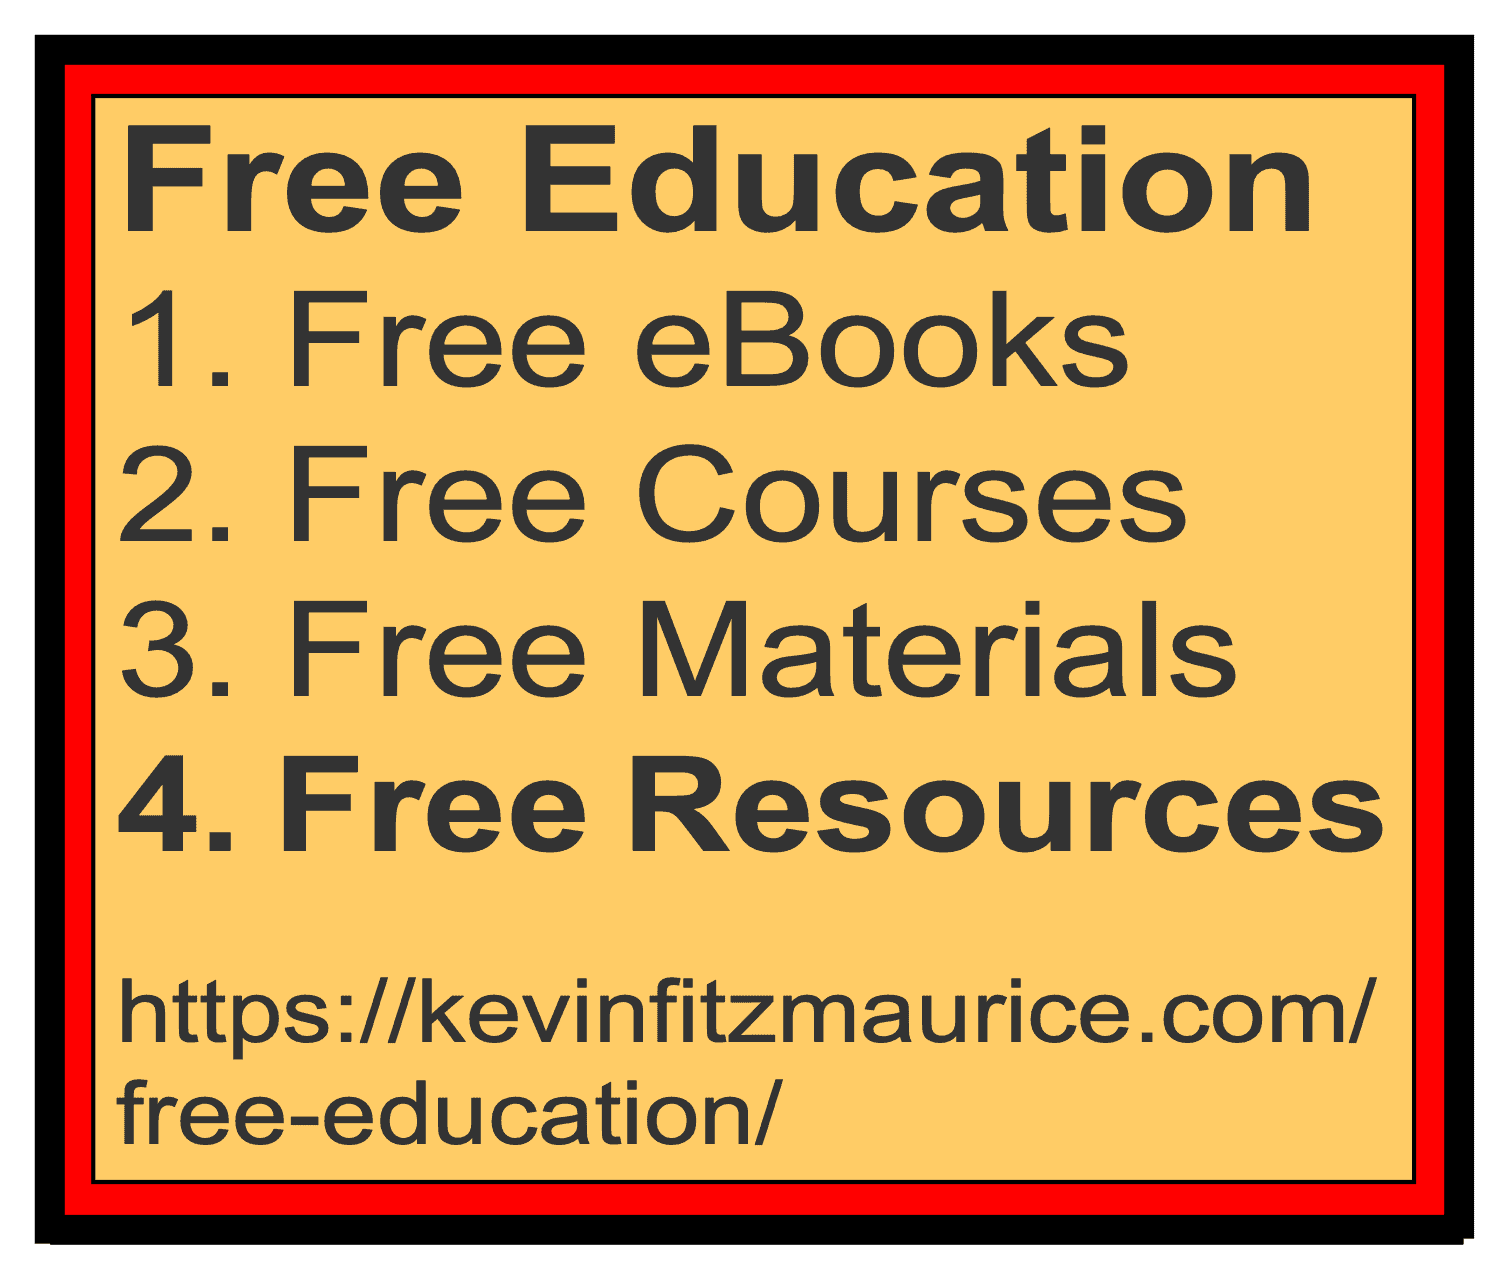 Free Education Lists for Resources